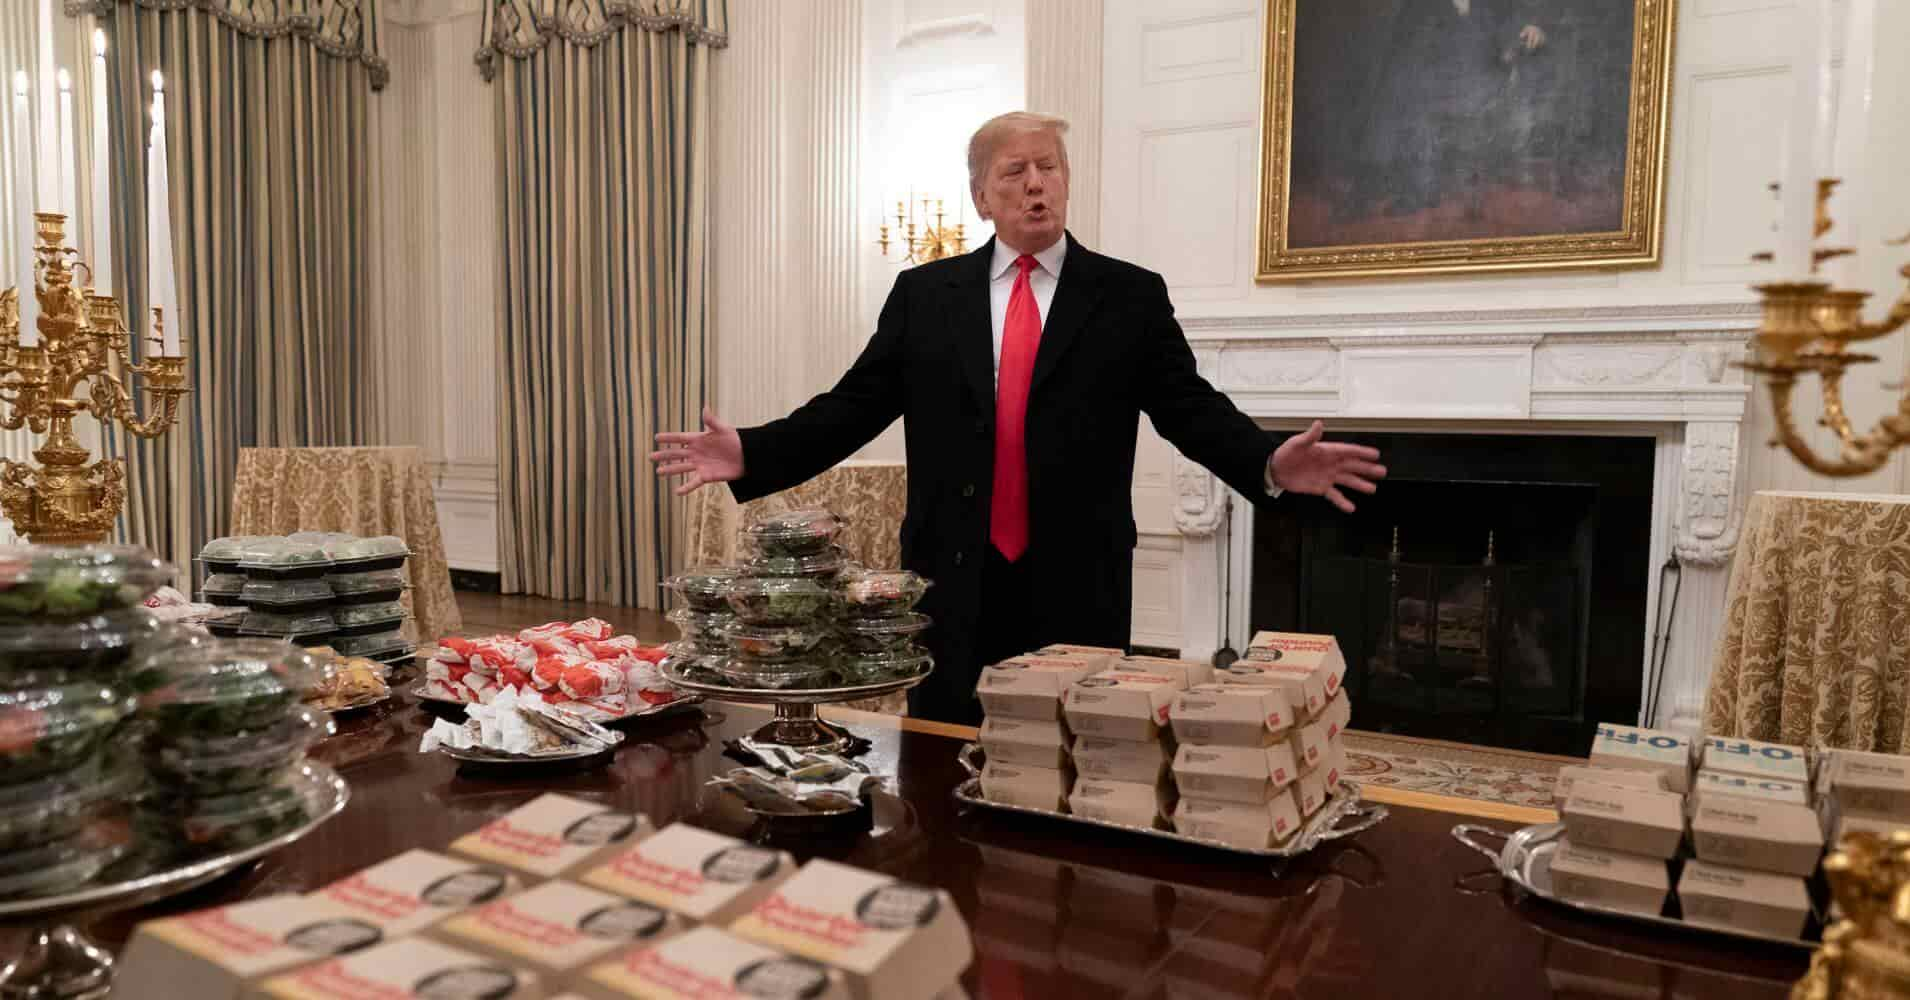 Trump Orders Fast Food after Shutdown Closes White House Kitchen